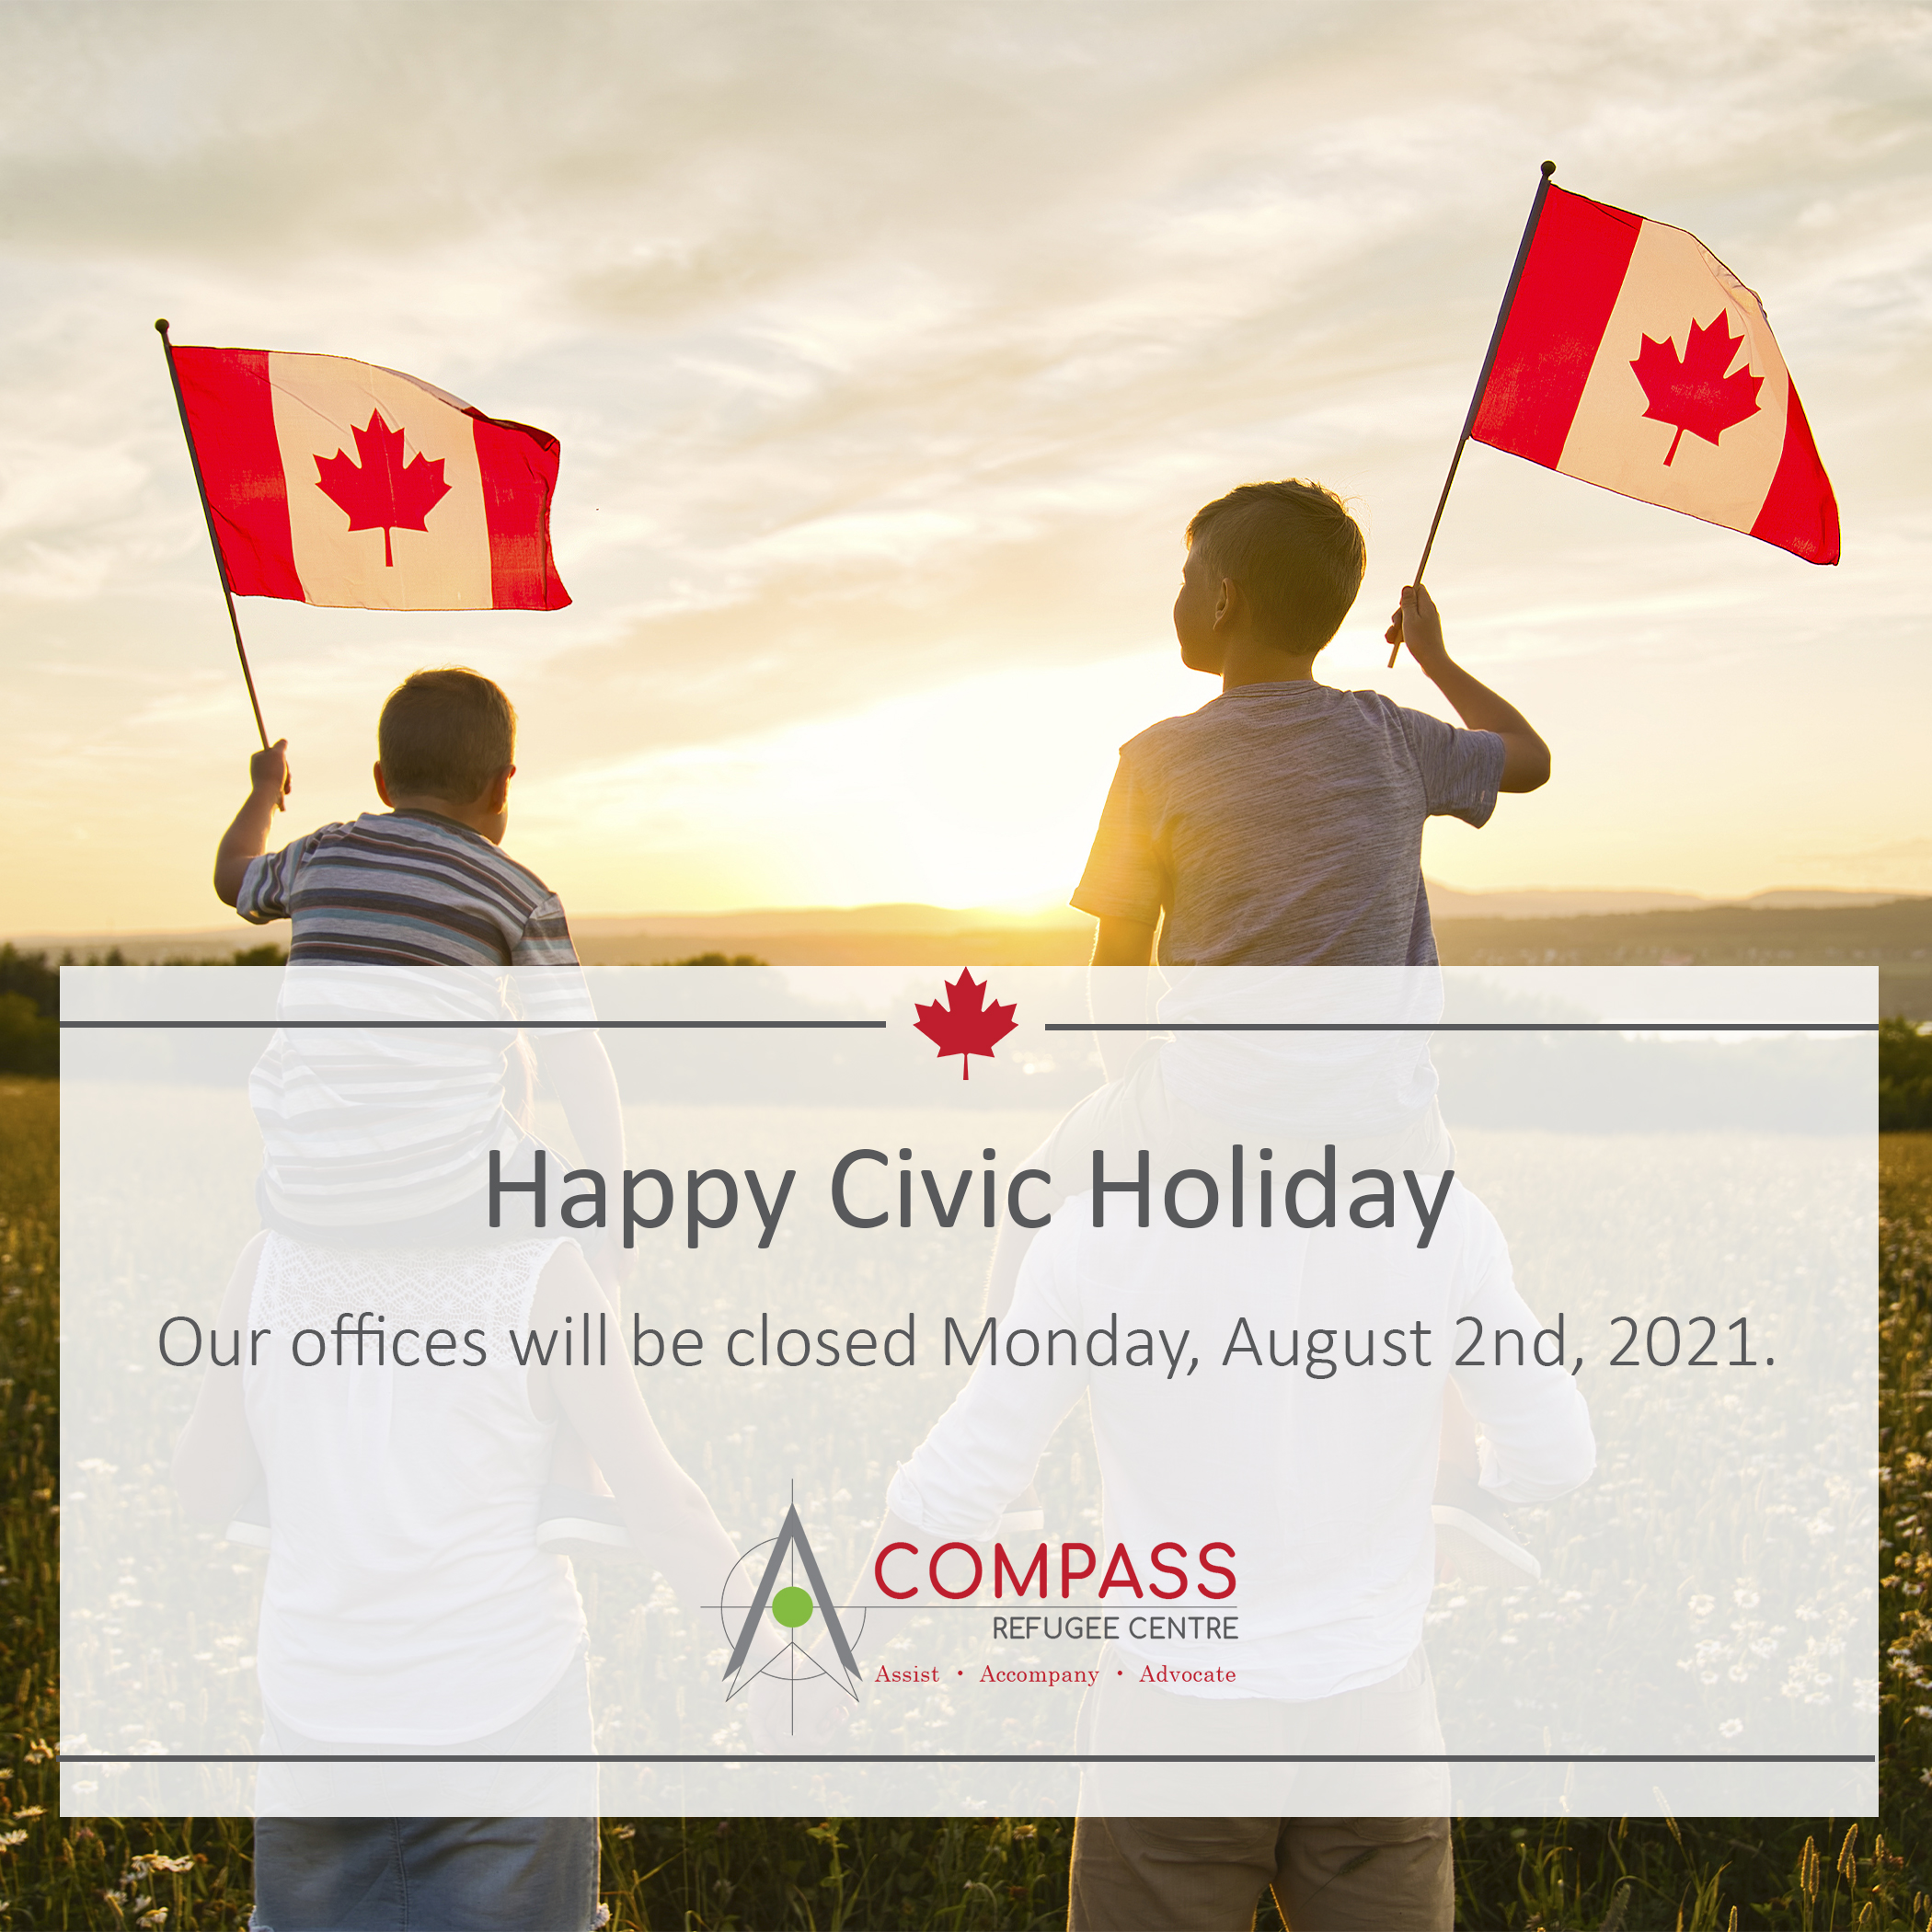 Civic holiday is the most widely used name for a public holiday celebrated in most of canada on the first monday in august,1 though it is only officially known by that term by the governments of. Irrugewx86bgpm